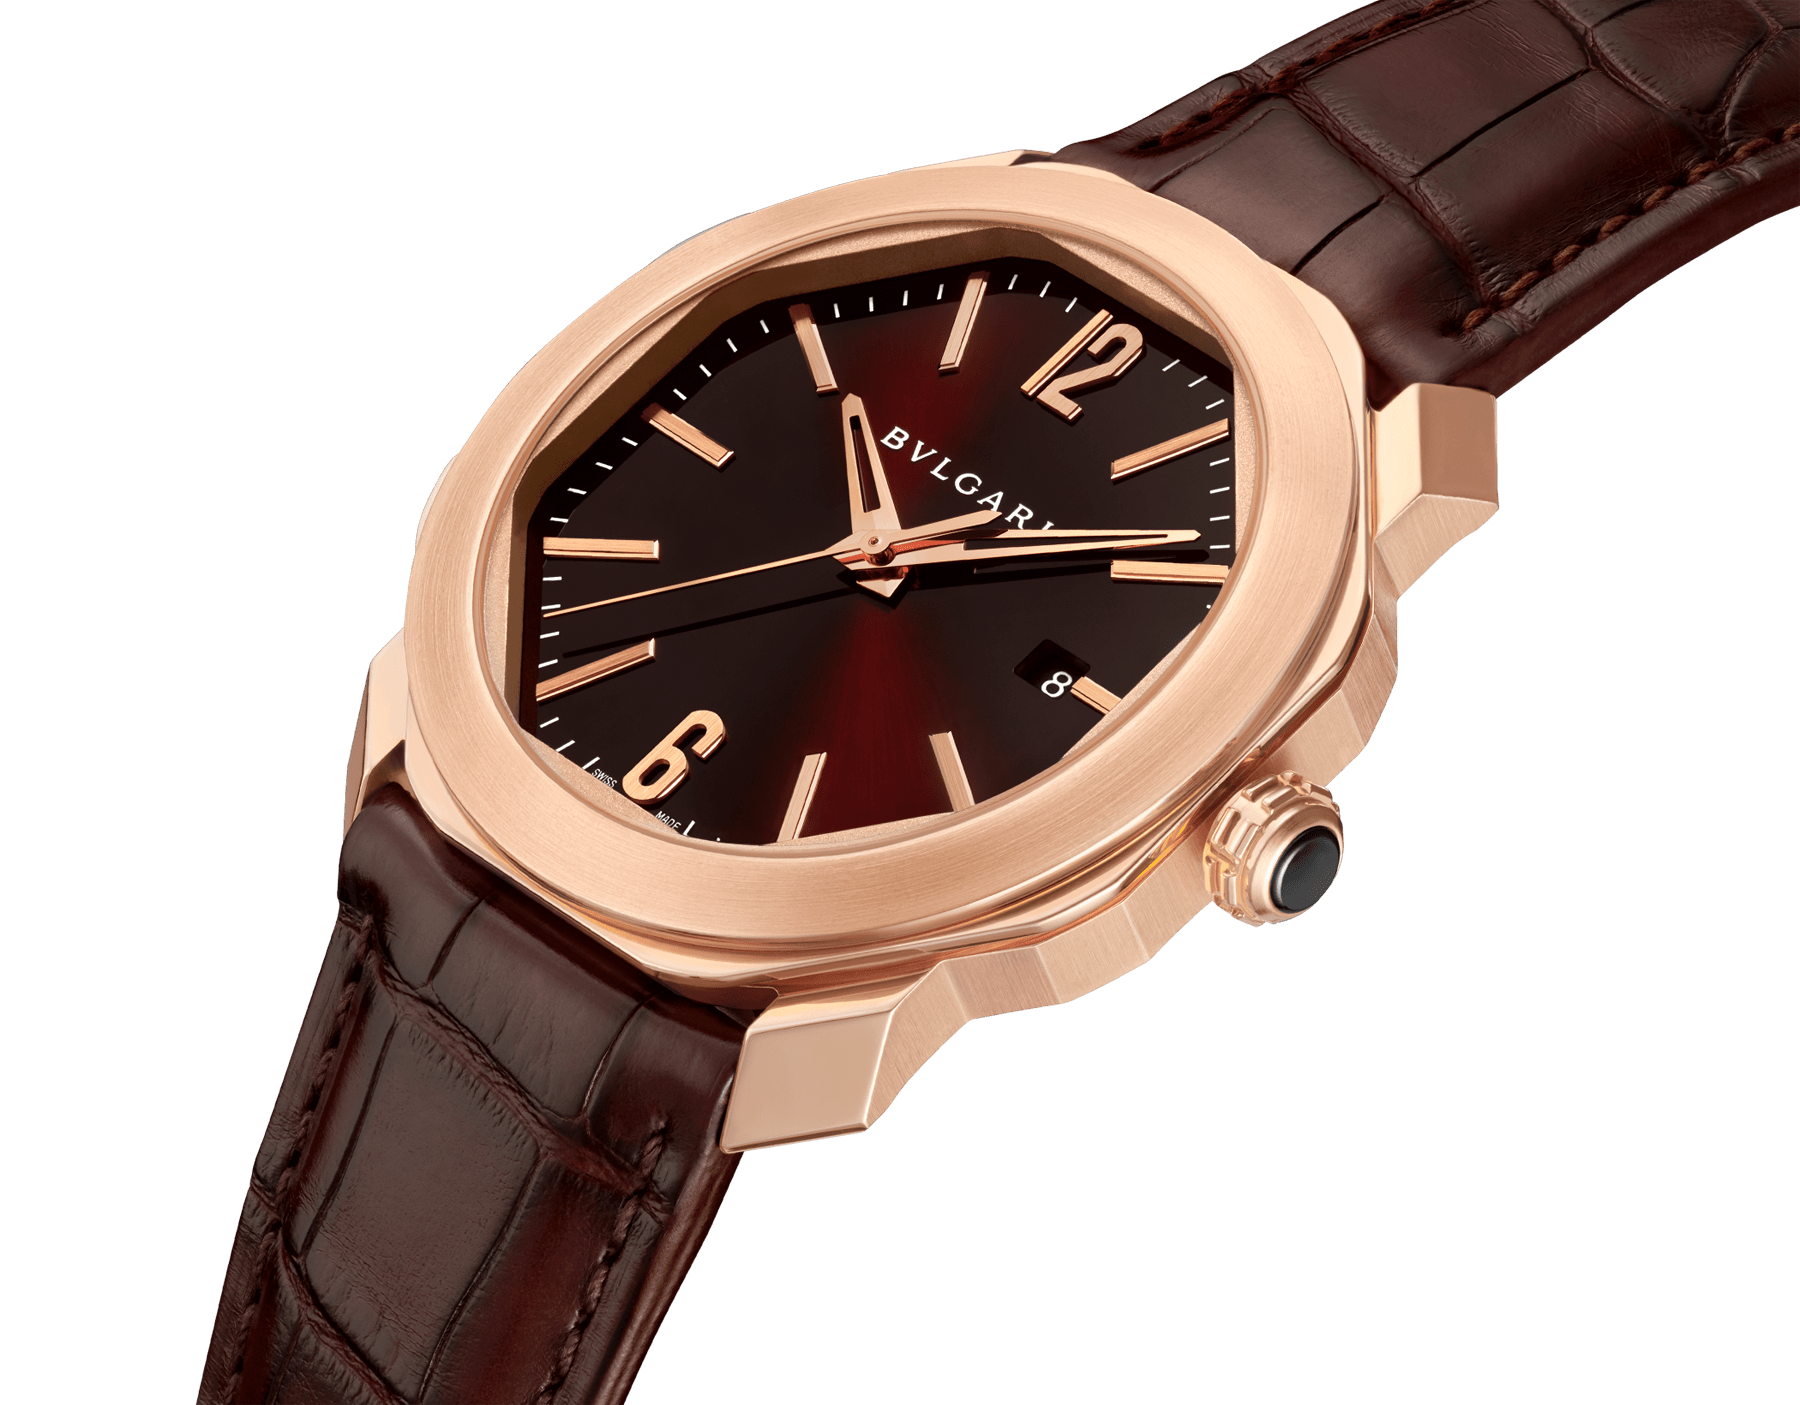 Octo Roma watch with mechanical manufacture movement, automatic winding, 18 kt rose gold case, dark brown lacquered dial and brown alligator bracelet. 102702 image 2